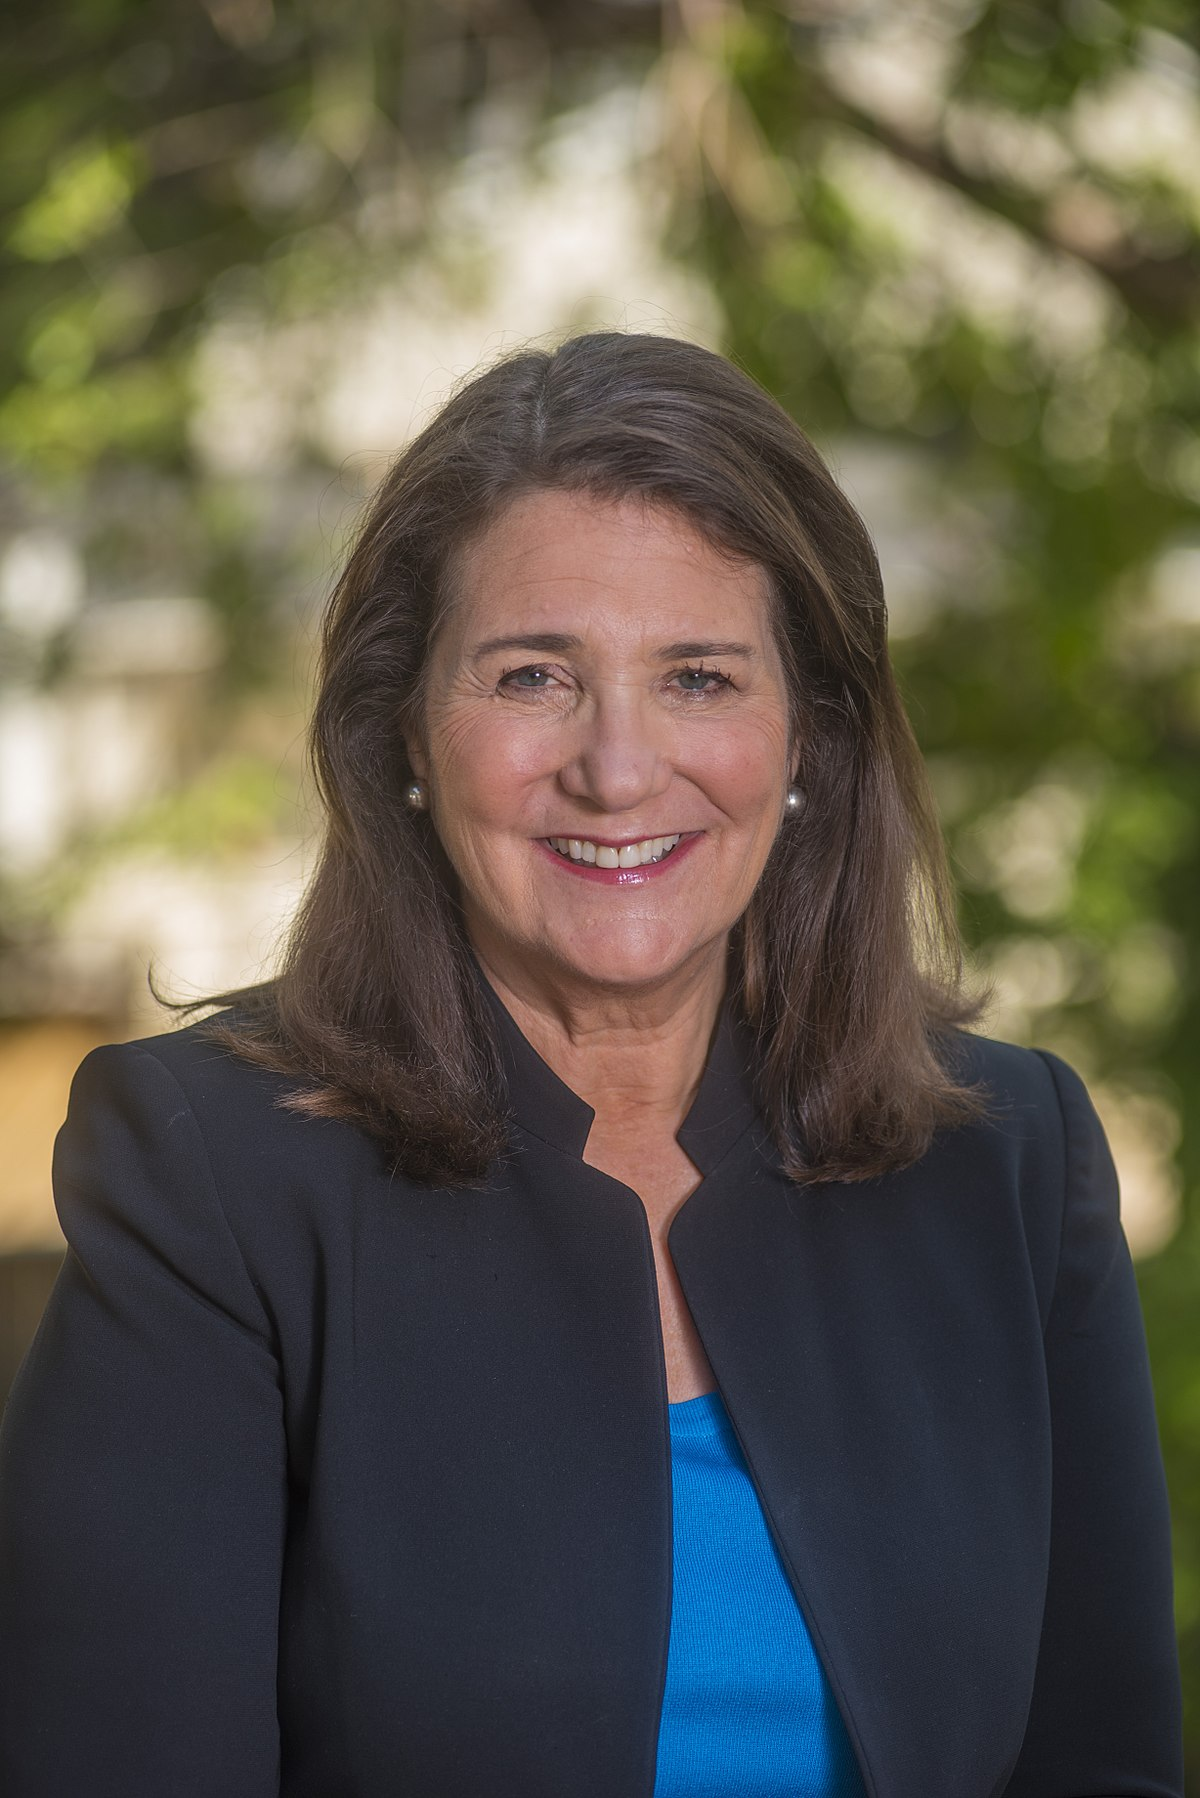 1200px-Diana_DeGette_official_photo.jpg